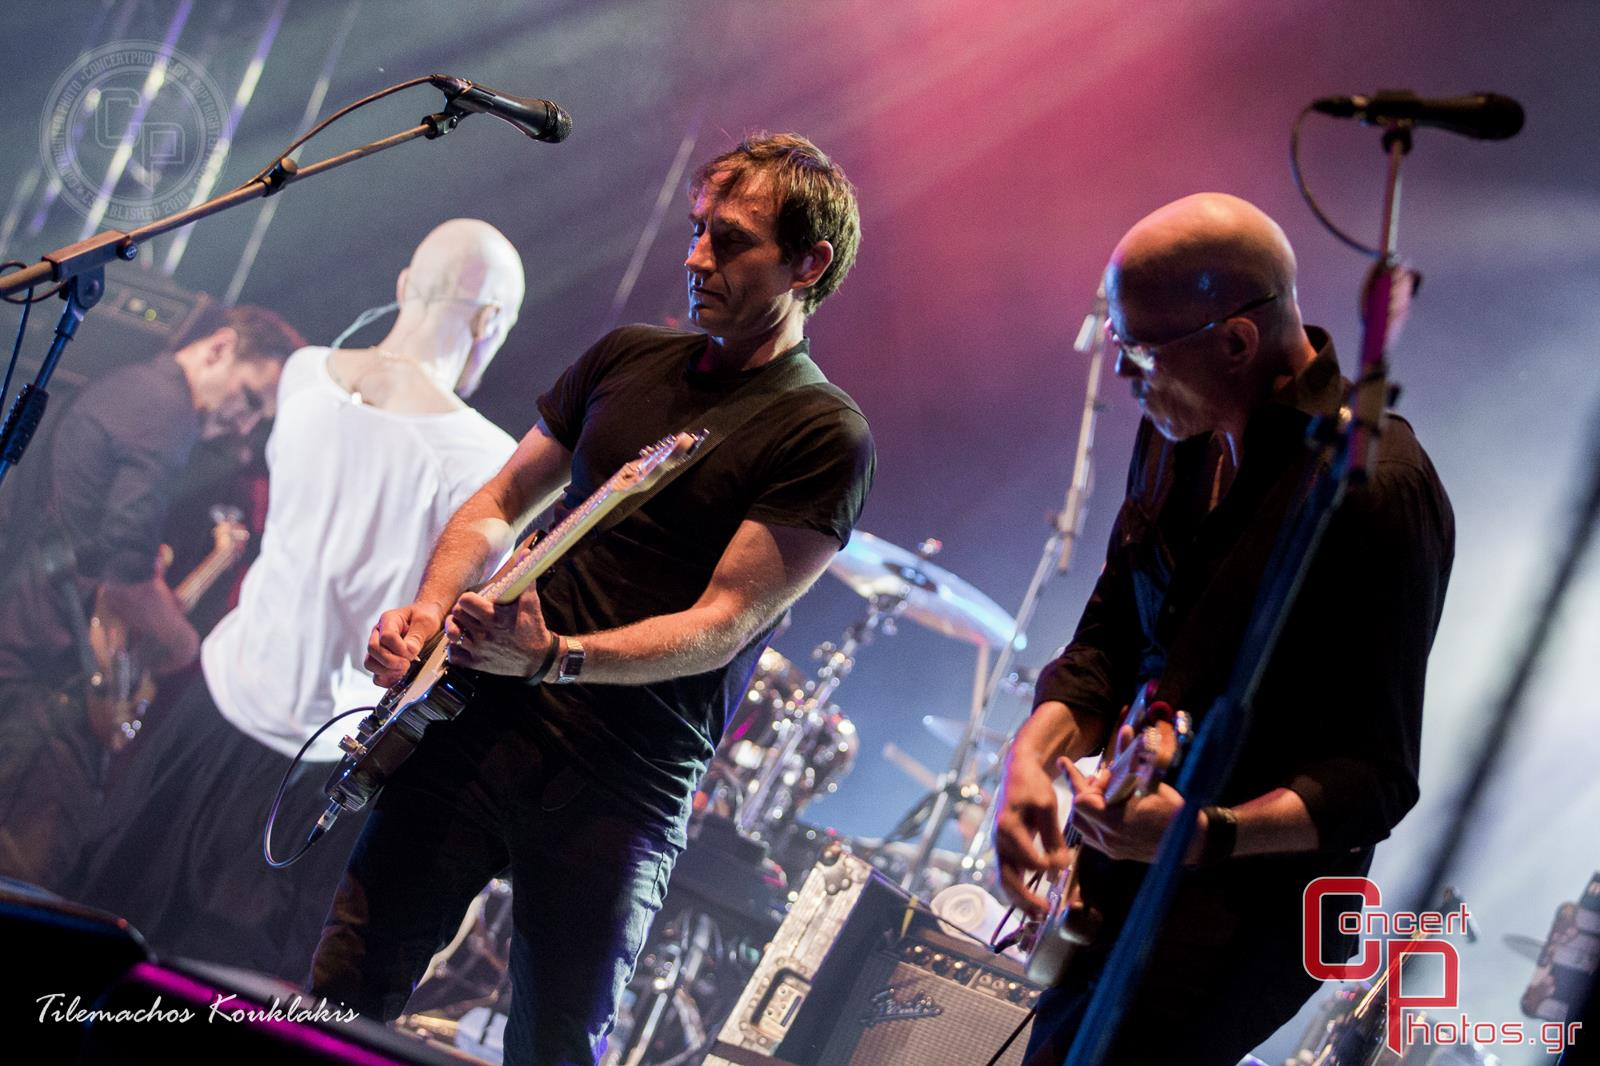 James & Moan-James-Theatro Vrachon photographer:  - Rockwave-2014-38